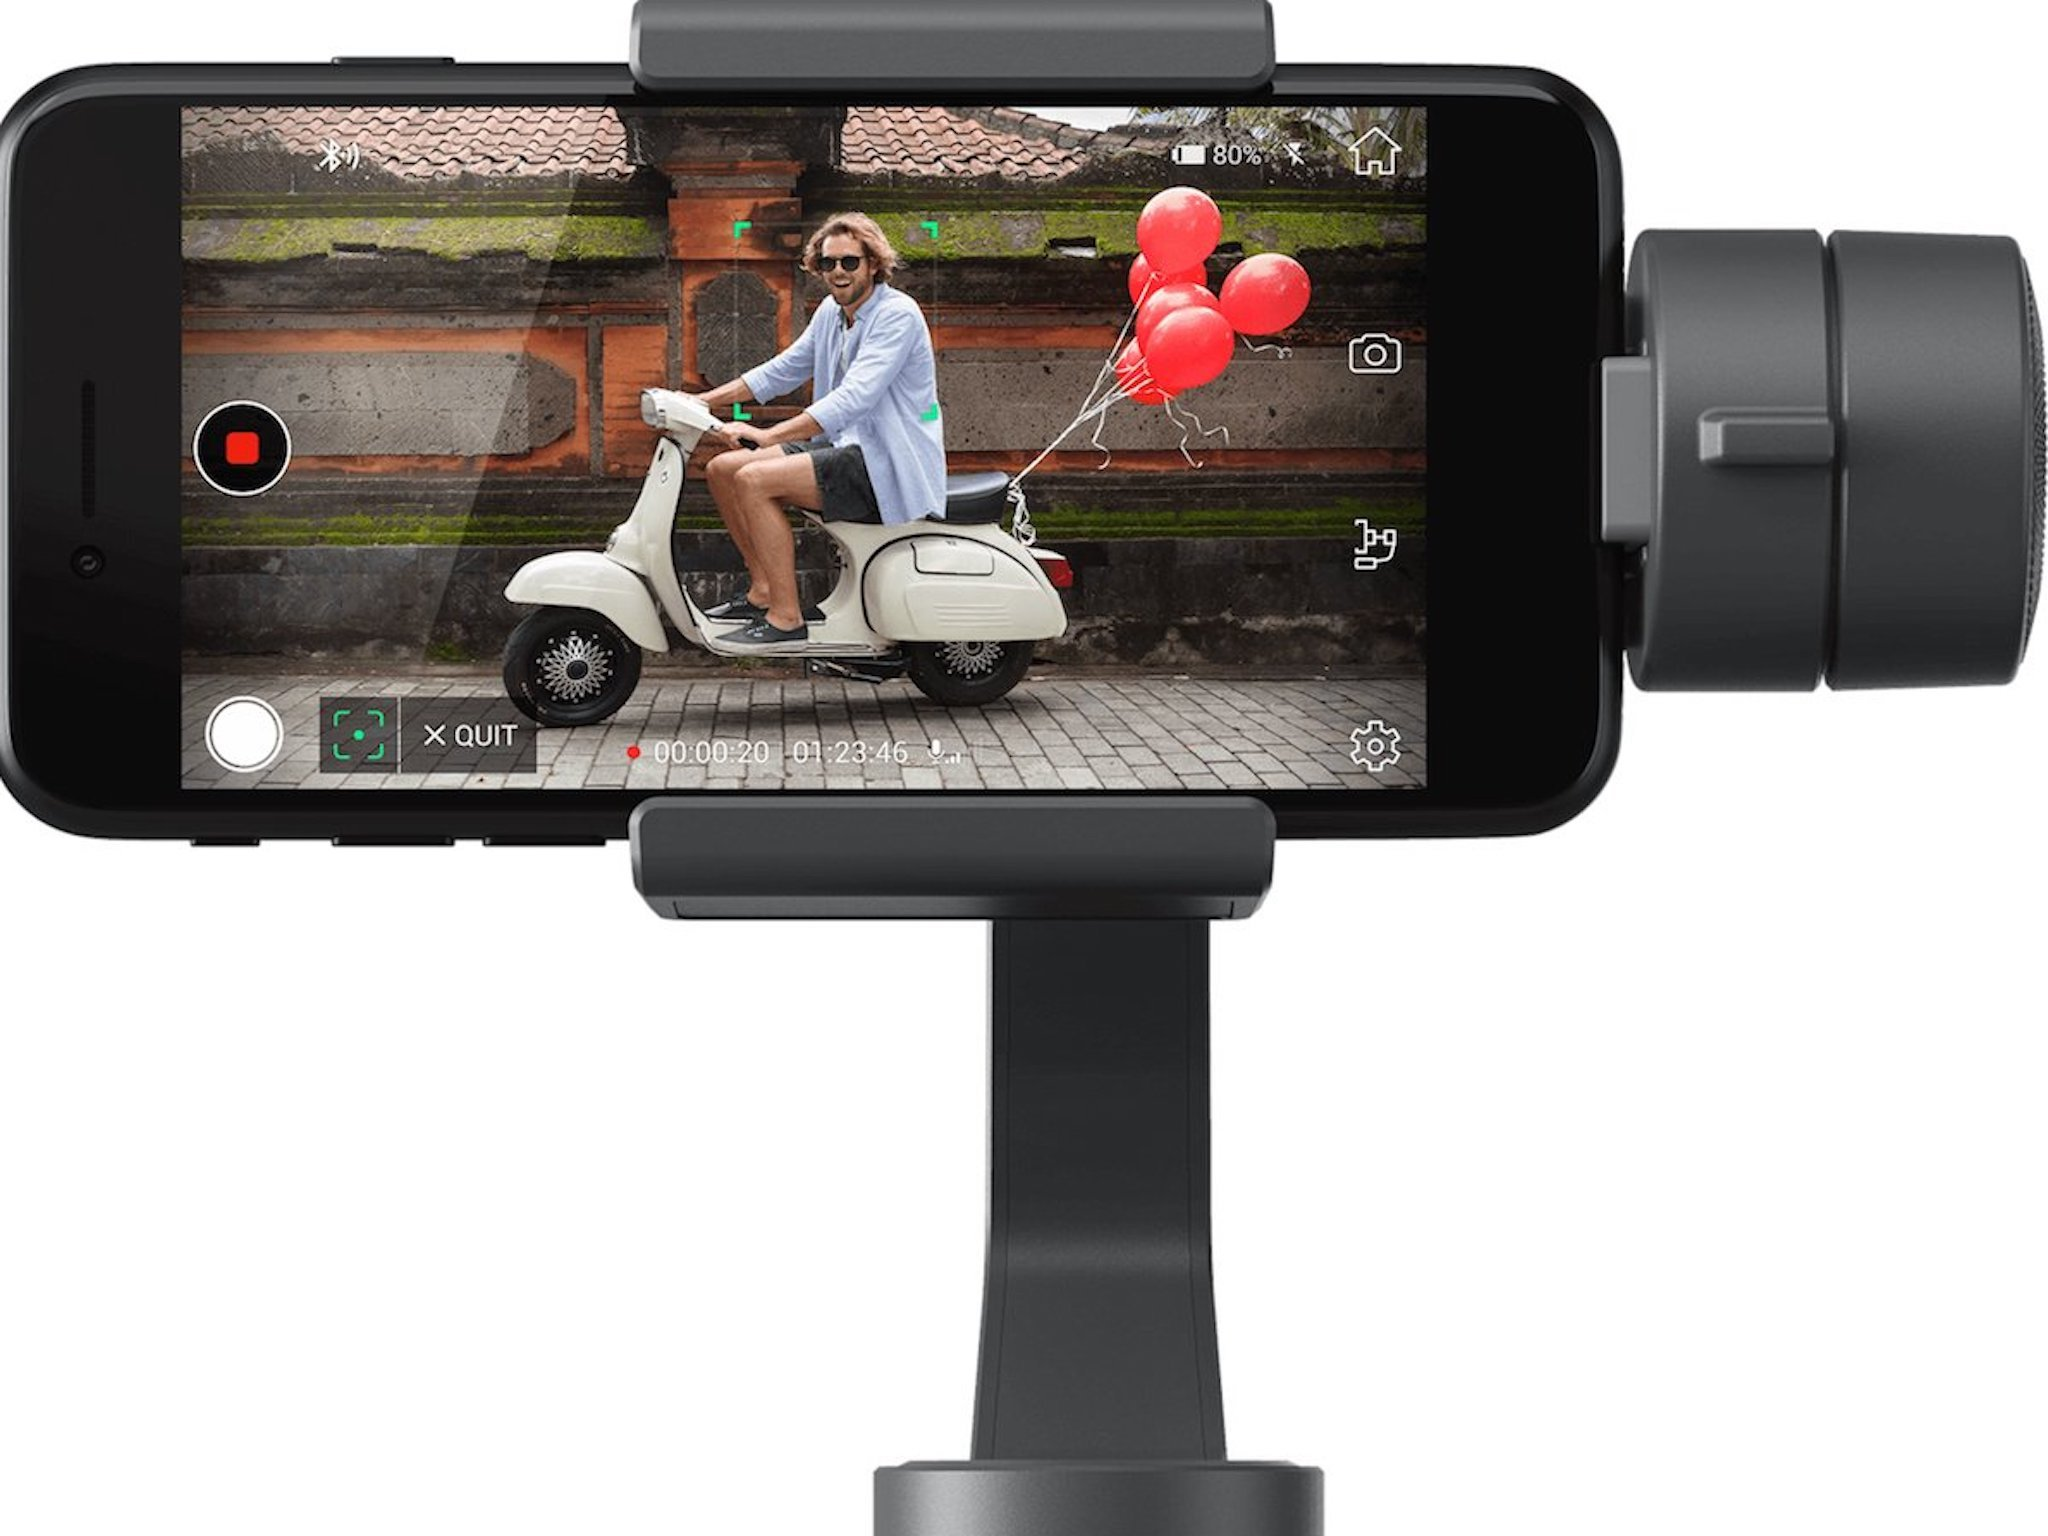 dji osmo mobile 2 tutorial